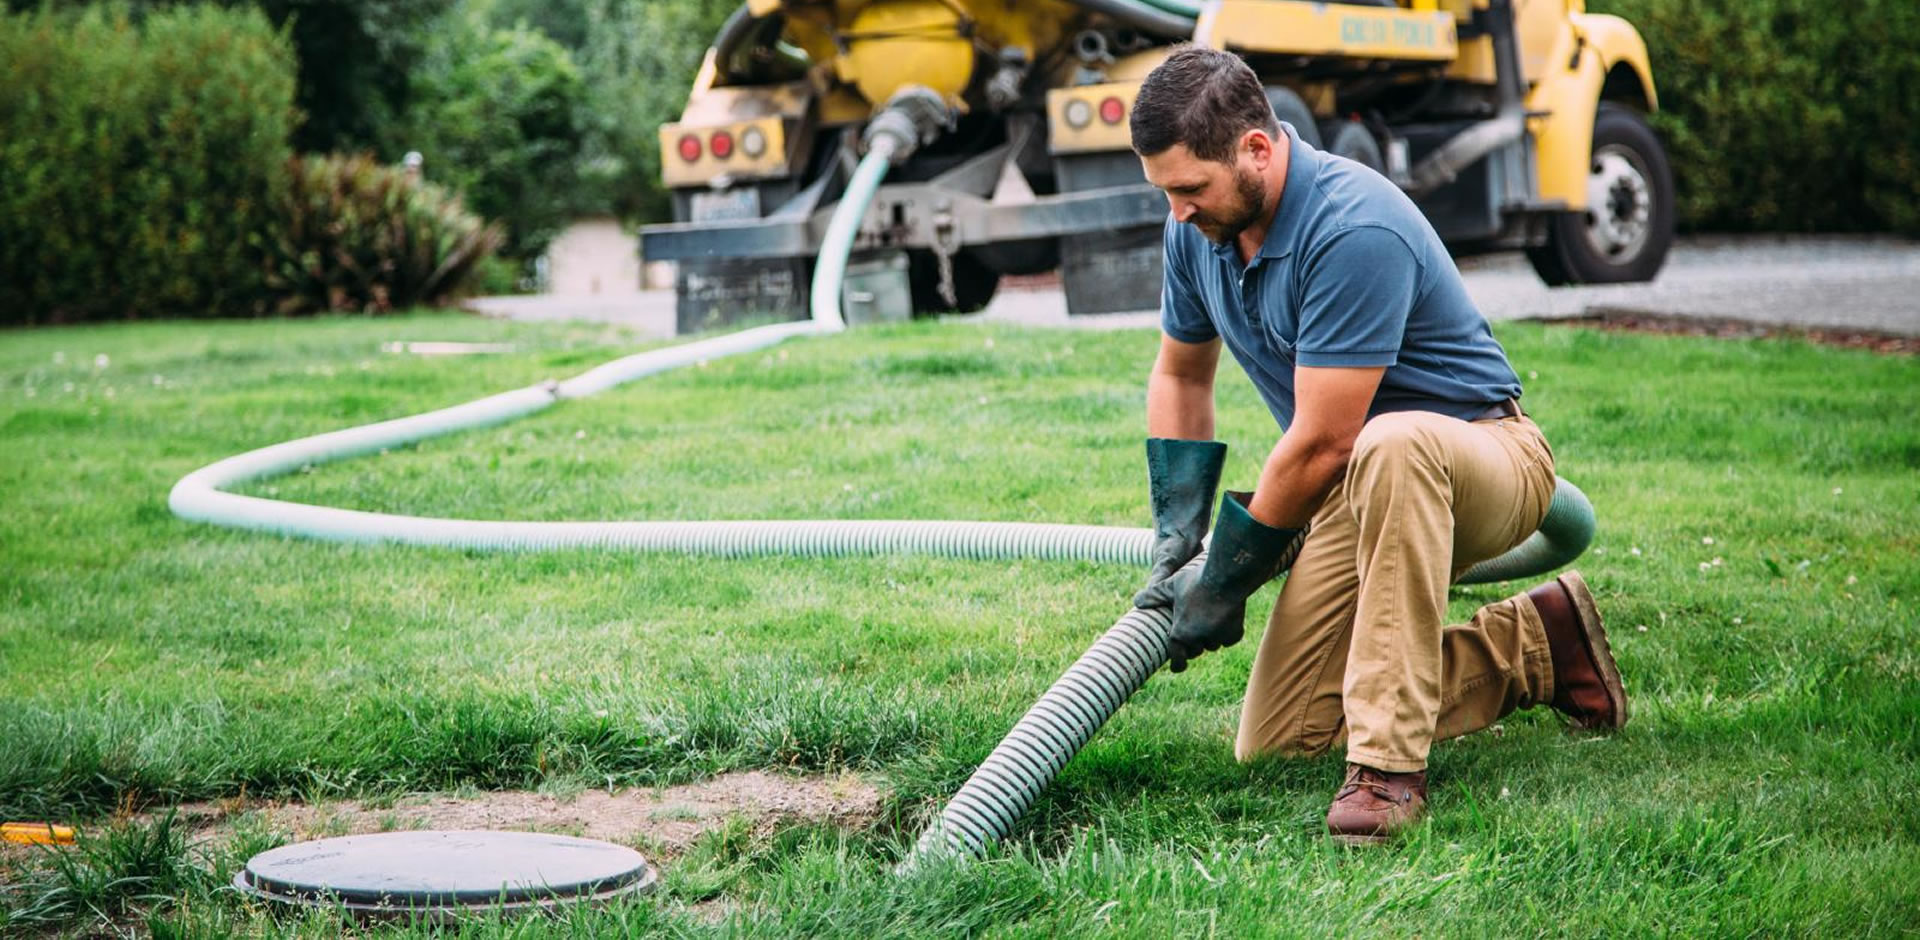 Septic Pumping Raleigh | Septic Tank Pumping Durham | Septic System